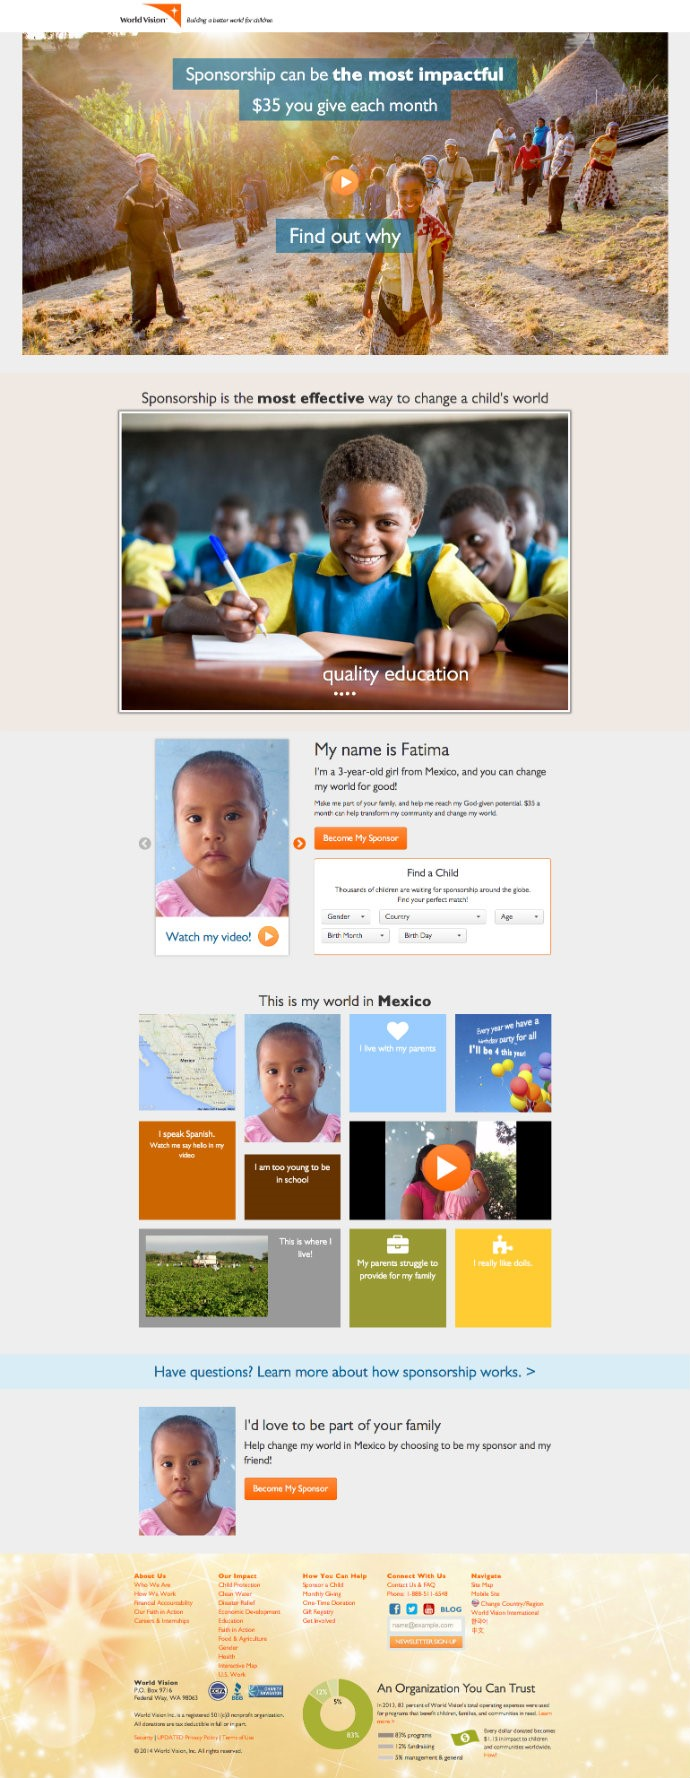 worldvision landing page